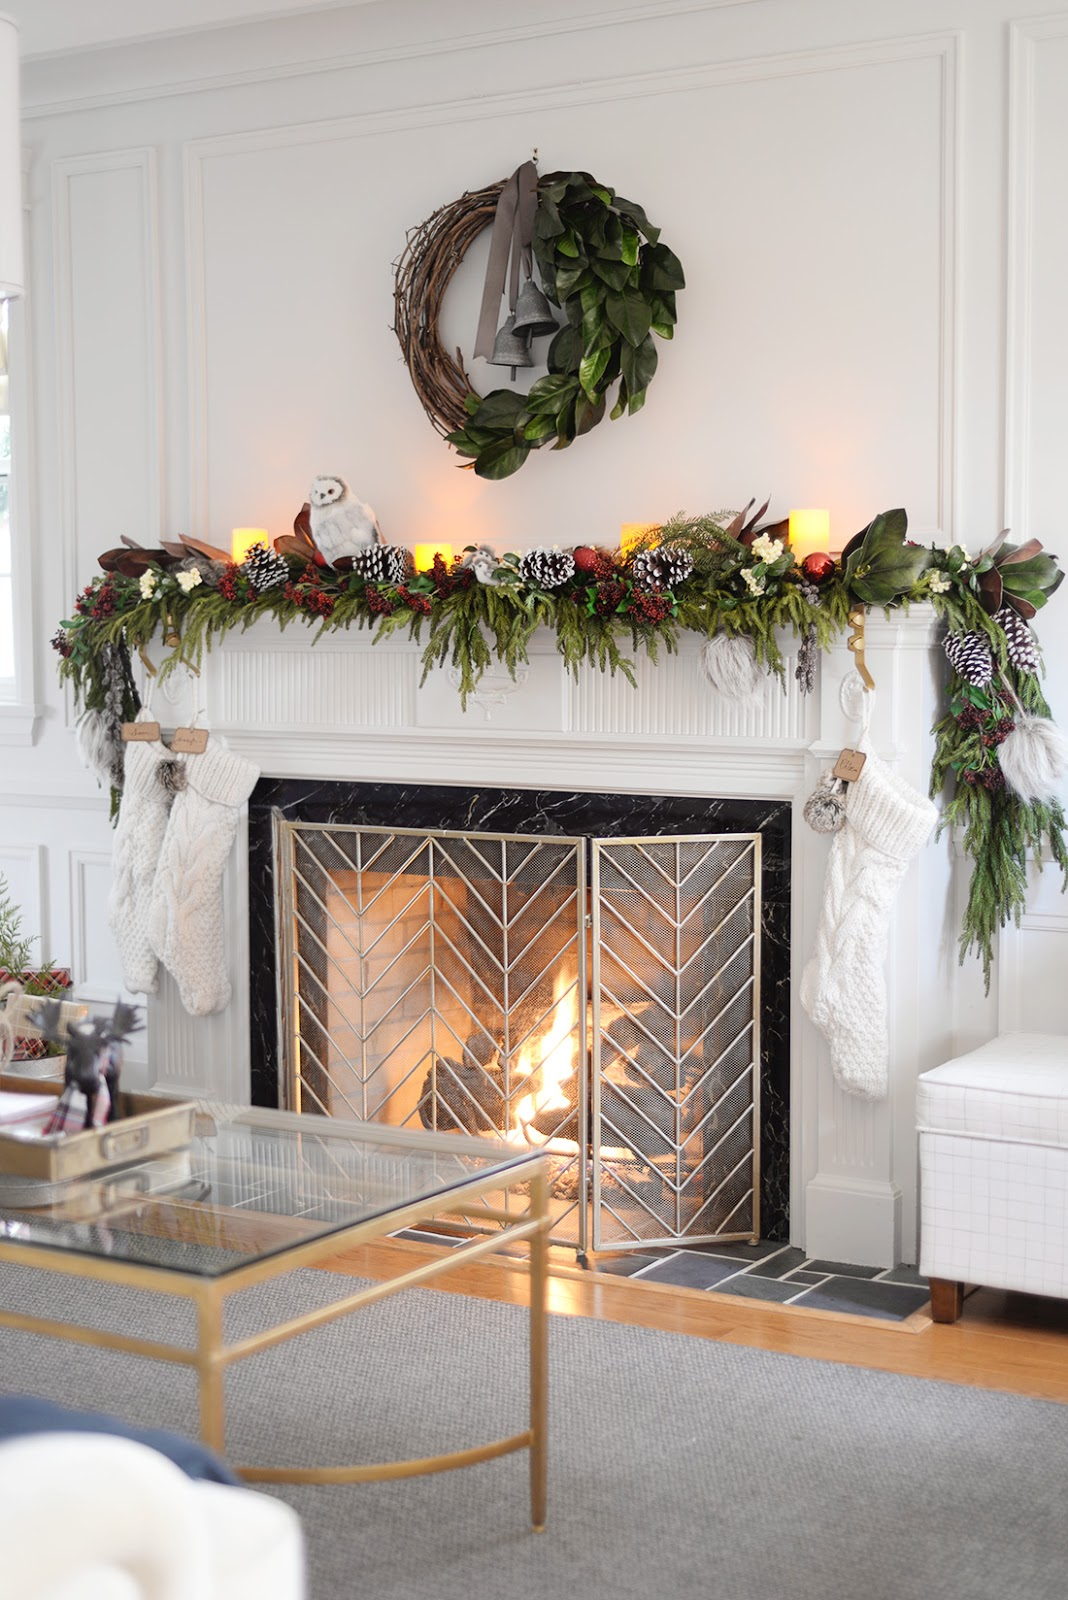 how to hang garland on mantle, how to hang garland on mantel, hang christmas garland, garland on fireplace mantel